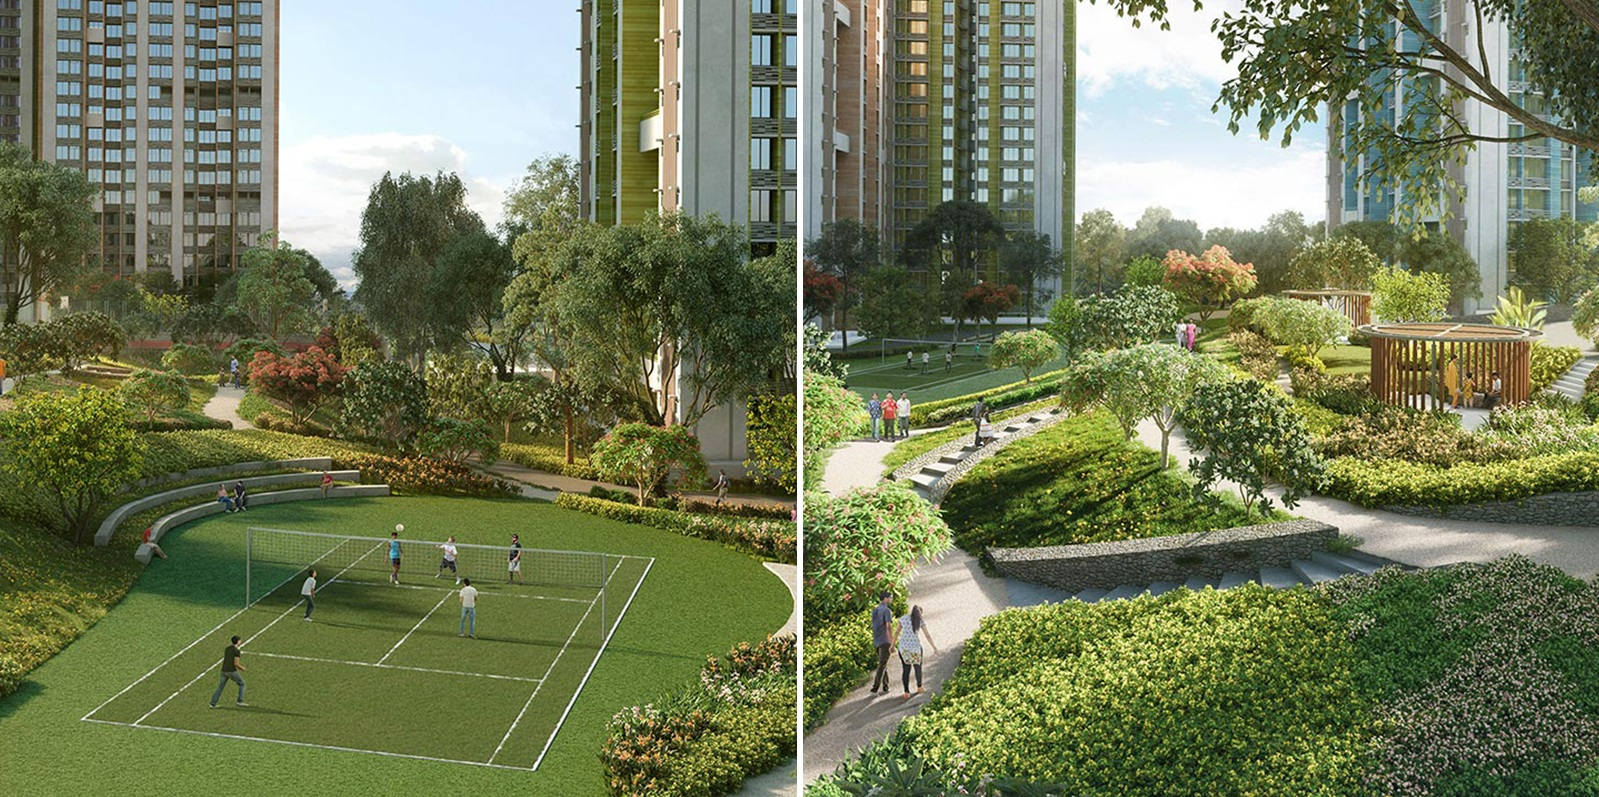 wadhwa wise city south block phase 1 b6 wing a4 amenities features9